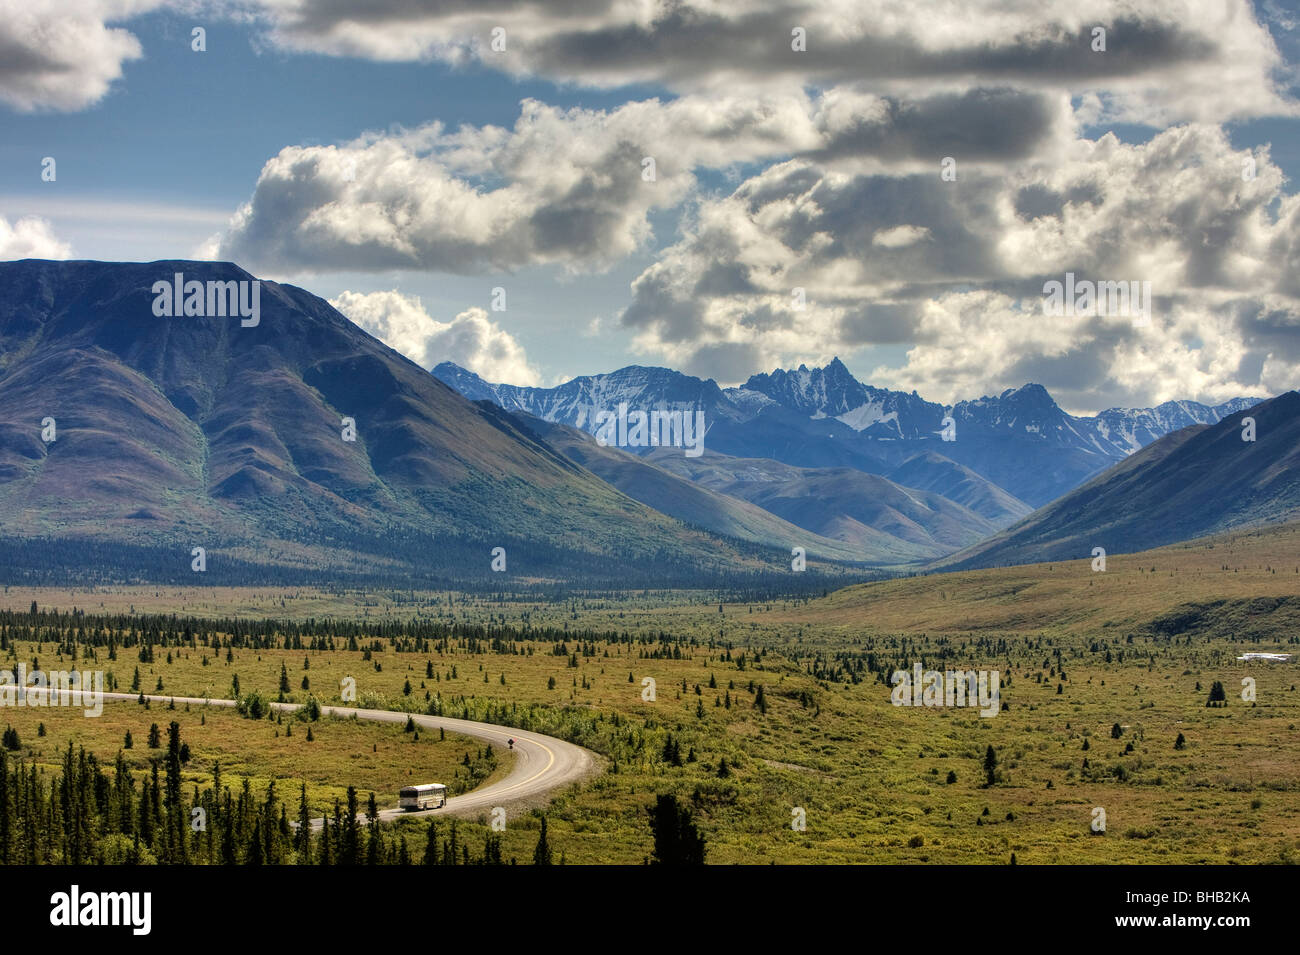 View of the park road and the before Savage River Denali National Park Interior Alaska Summer HDR image - Stock Image